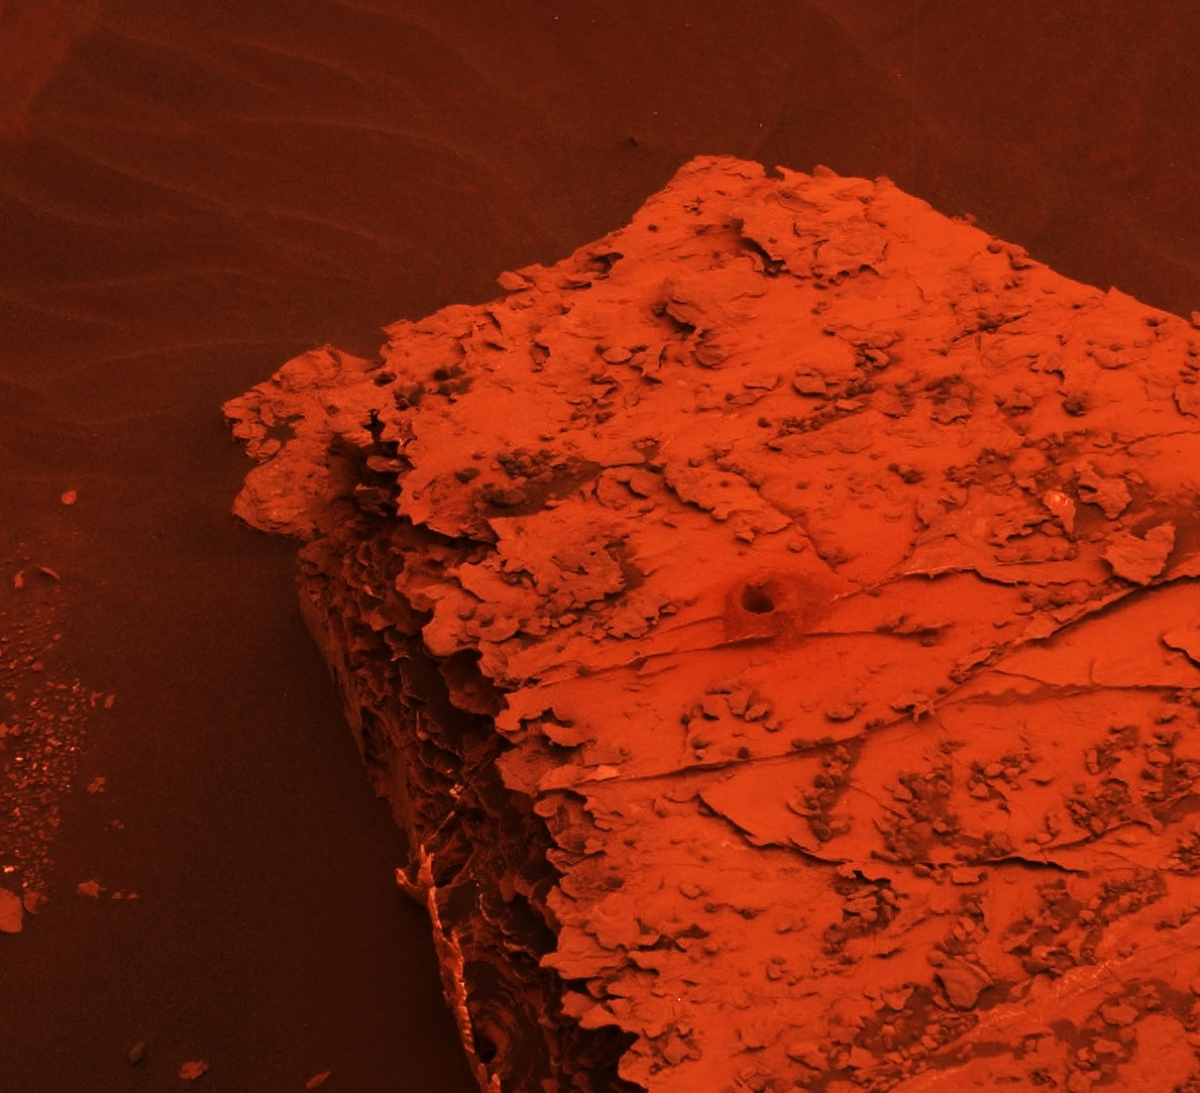 Mars during dust storm by curiosity rover  alizarin orange and burnt sienna and black